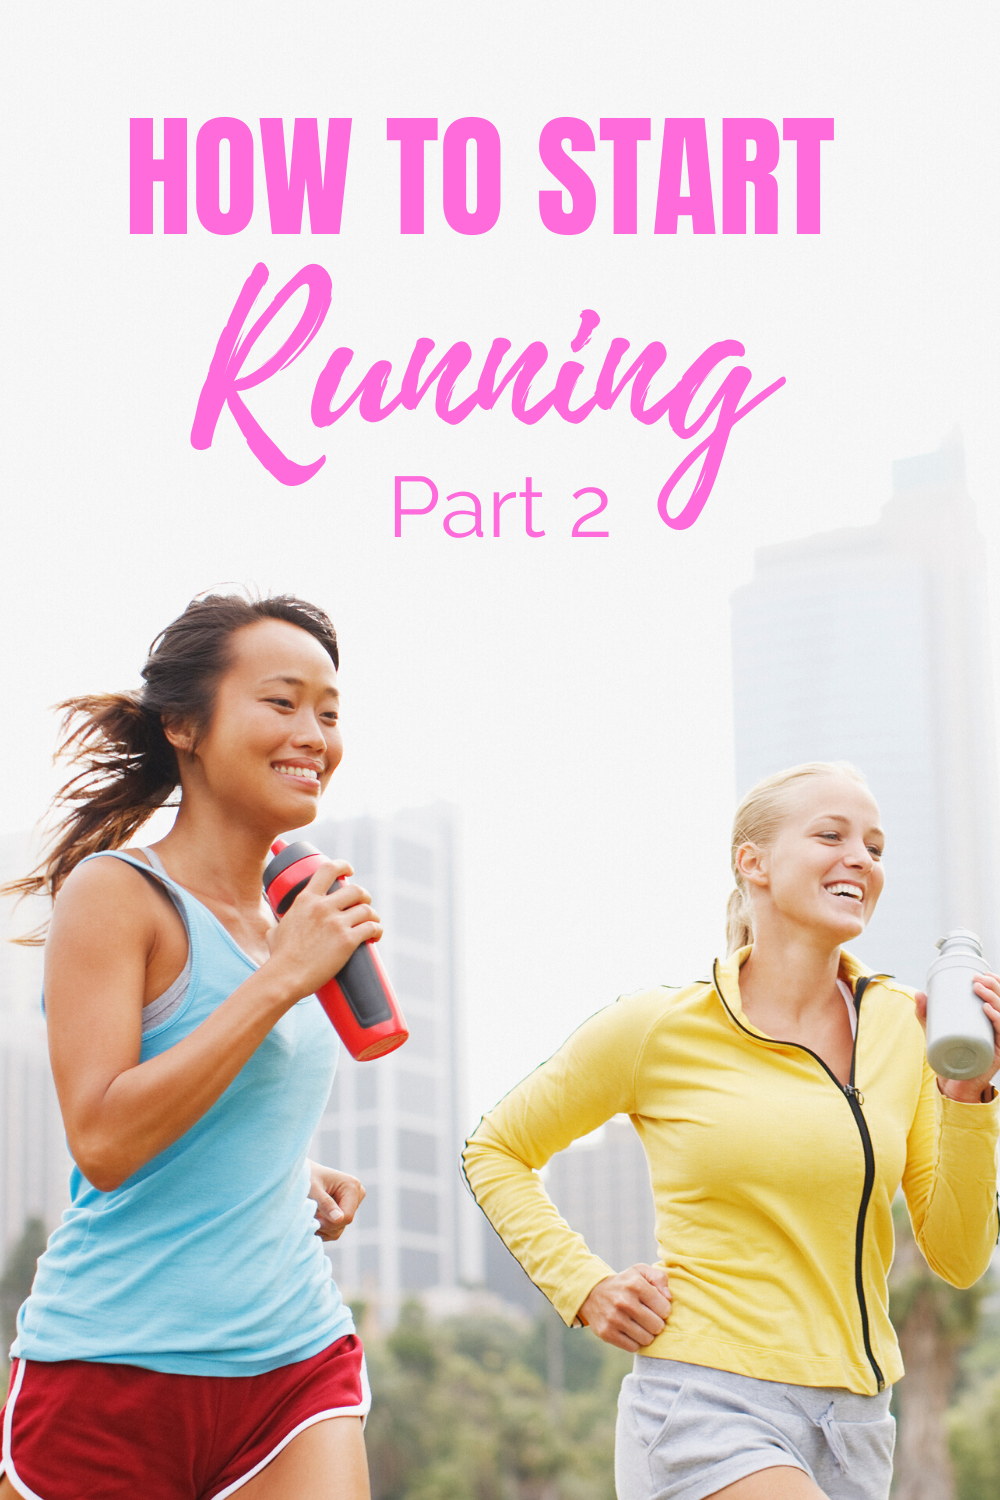 I started running about two years ago and have found it to be so rewarding. Even if you aren't a runner, there are so many reasons to start. I'm back with Part 2 of How to Start Running so that you can begin your own running journey today!